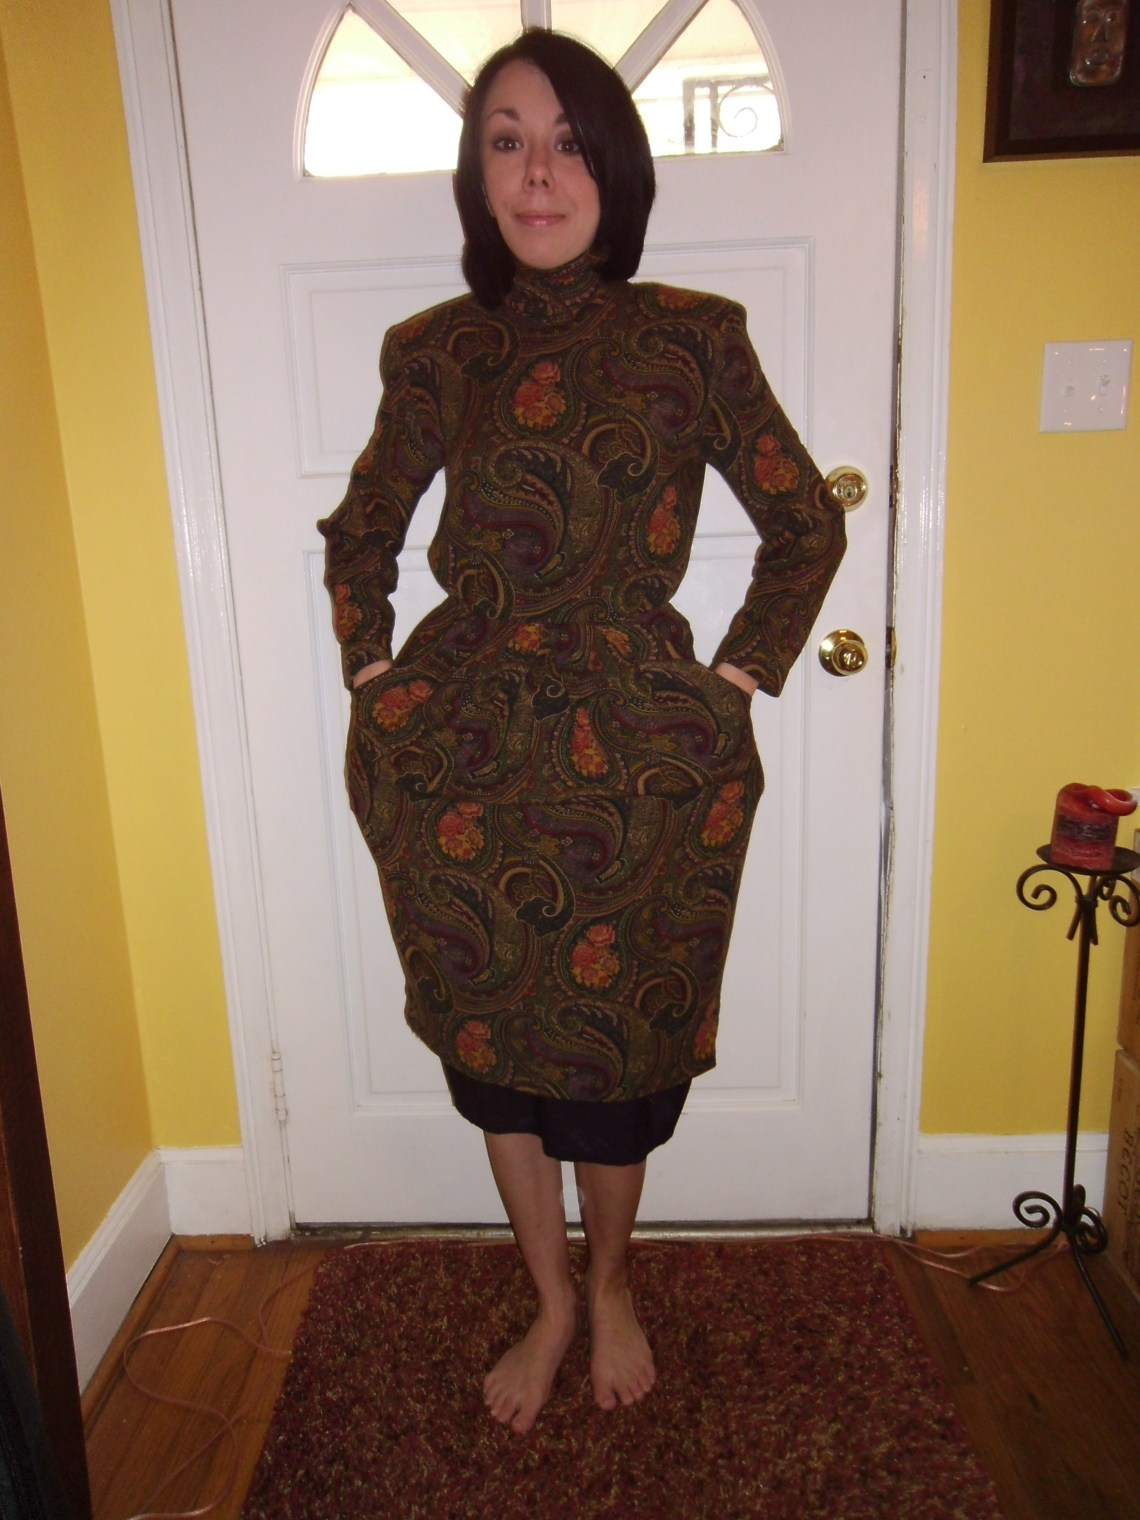 Day 198:  Plucky in Paisley Dress 1